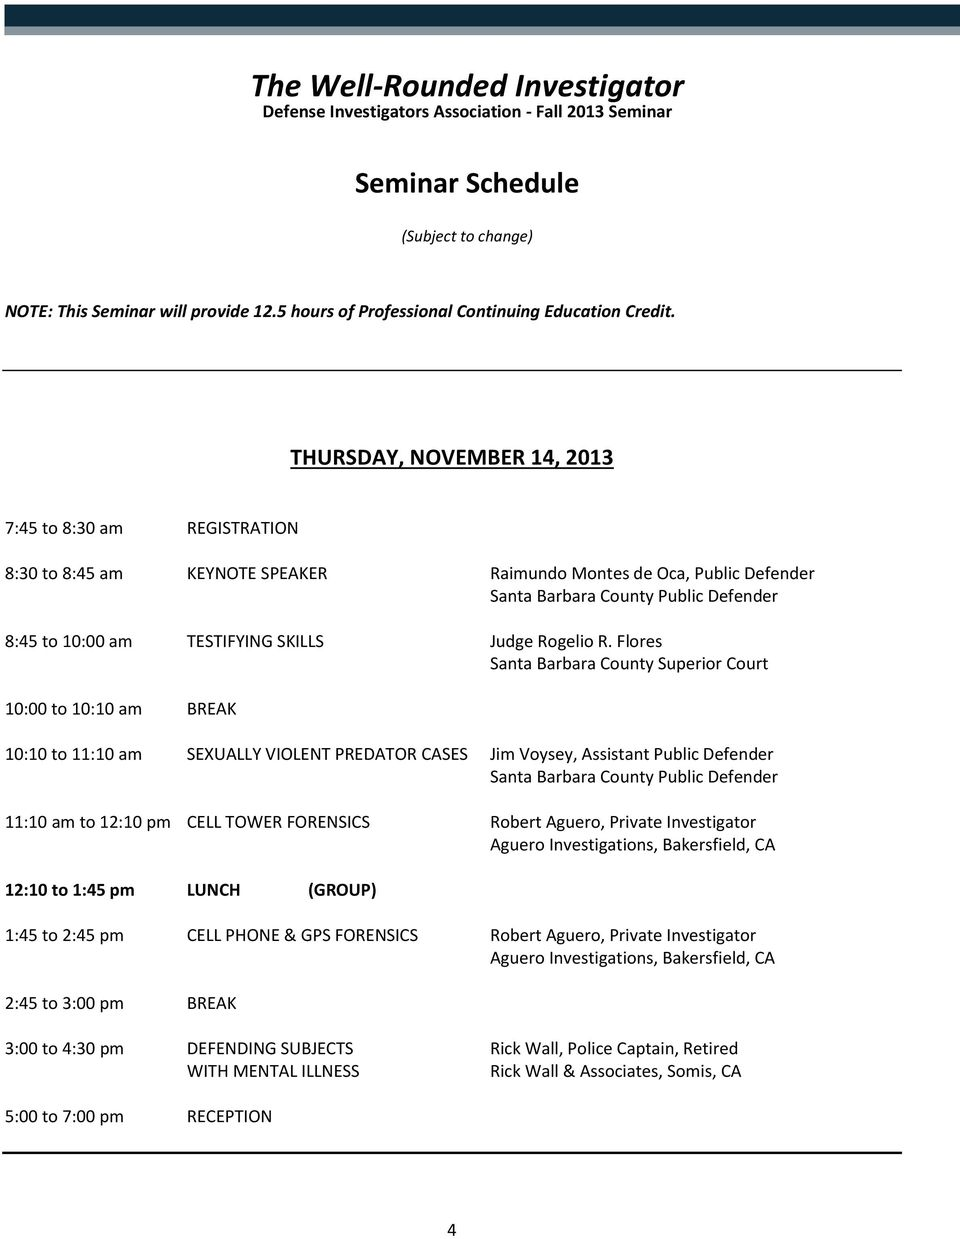 THURSDAY, NOVEMBER 14, 2013 7:45 to 8:30 am REGISTRATION 8:30 to 8:45 am KEYNOTE SPEAKER Raimundo Montes de Oca, Public Defender 8:45 to 10:00 am TESTIFYING SKILLS Judge Rogelio R.